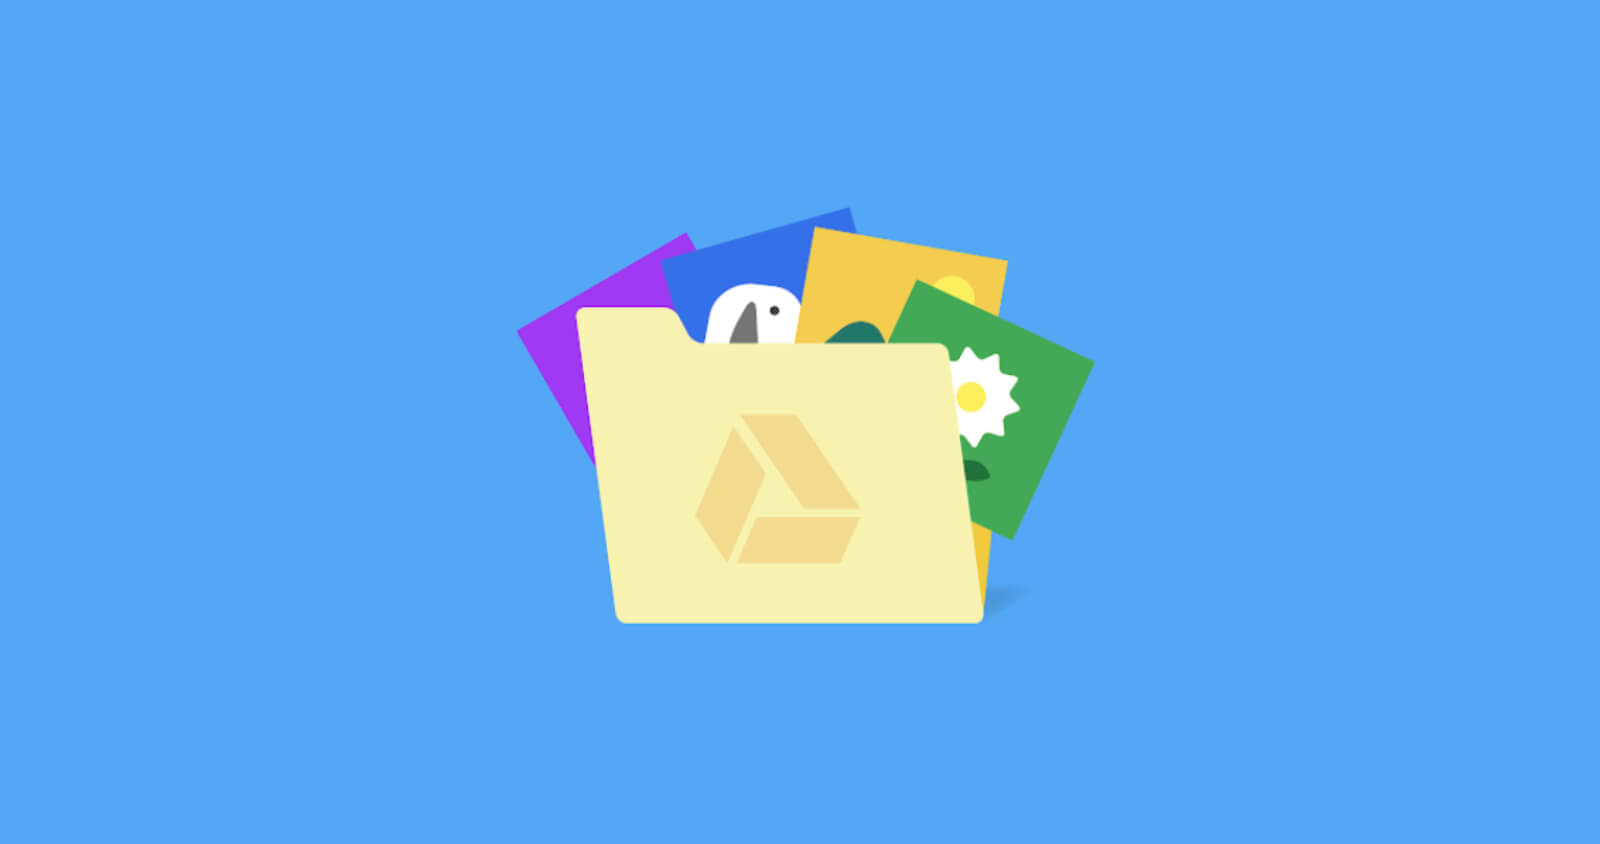 Google Drive is testing a full offline storage mode for all files